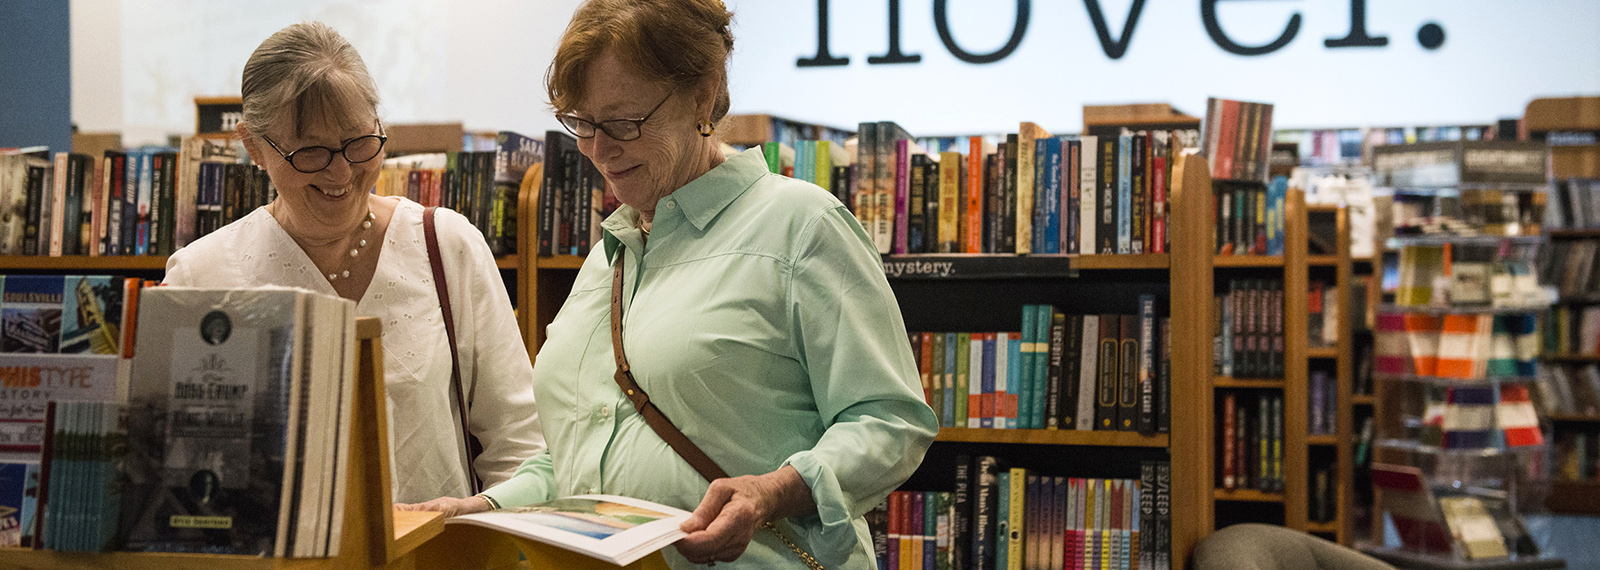 Tes Herman, left, and her cousin Leslie Herman look at a book of Freida Hamm paintings at Novel bookstore in East Memphis. <span class='image-credits'>Brandon Dill</span>